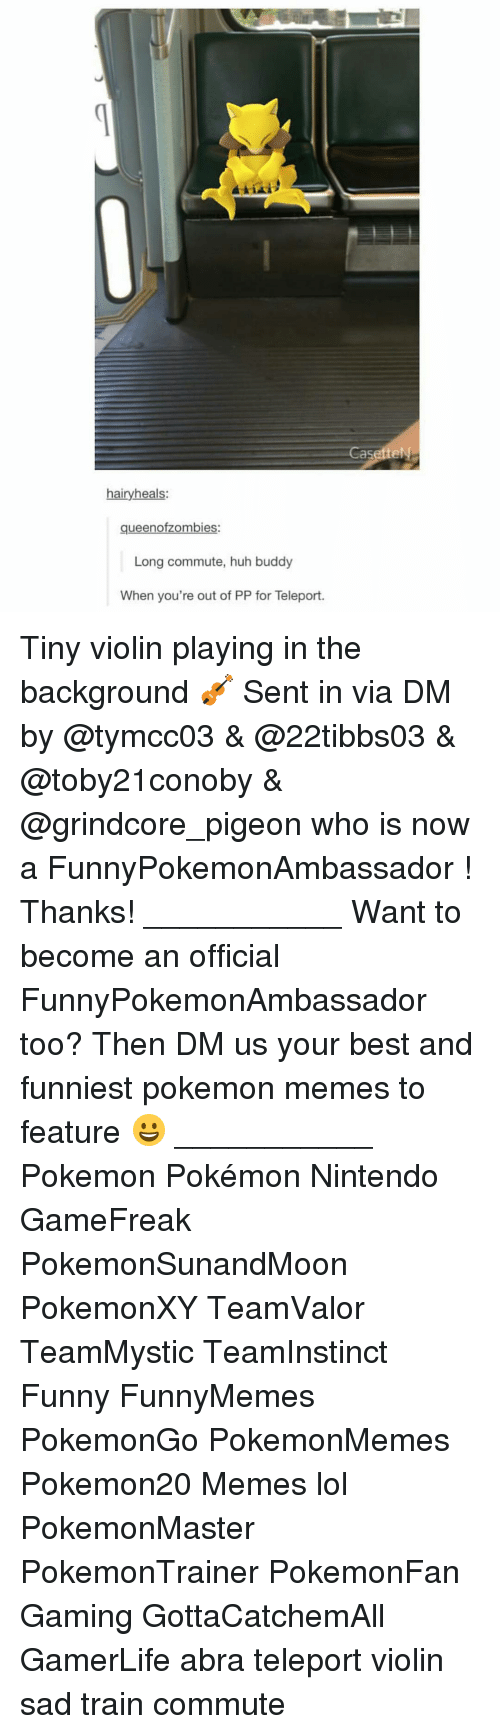 Huh, Memes, and Nintendo: hairy heals:  queenofzombies:  Long commute, huh buddy  When you're out of PP for Teleport.  asetteN Tiny violin playing in the background 🎻 Sent in via DM by @tymcc03 & @22tibbs03 & @toby21conoby & @grindcore_pigeon who is now a FunnyPokemonAmbassador ! Thanks! ___________ Want to become an official FunnyPokemonAmbassador too? Then DM us your best and funniest pokemon memes to feature 😀 ___________ Pokemon Pokémon Nintendo GameFreak PokemonSunandMoon PokemonXY TeamValor TeamMystic TeamInstinct Funny FunnyMemes PokemonGo PokemonMemes Pokemon20 Memes lol ポケットモンスター PokemonMaster PokemonTrainer PokemonFan Gaming GottaCatchemAll GamerLife abra teleport violin sad train commute